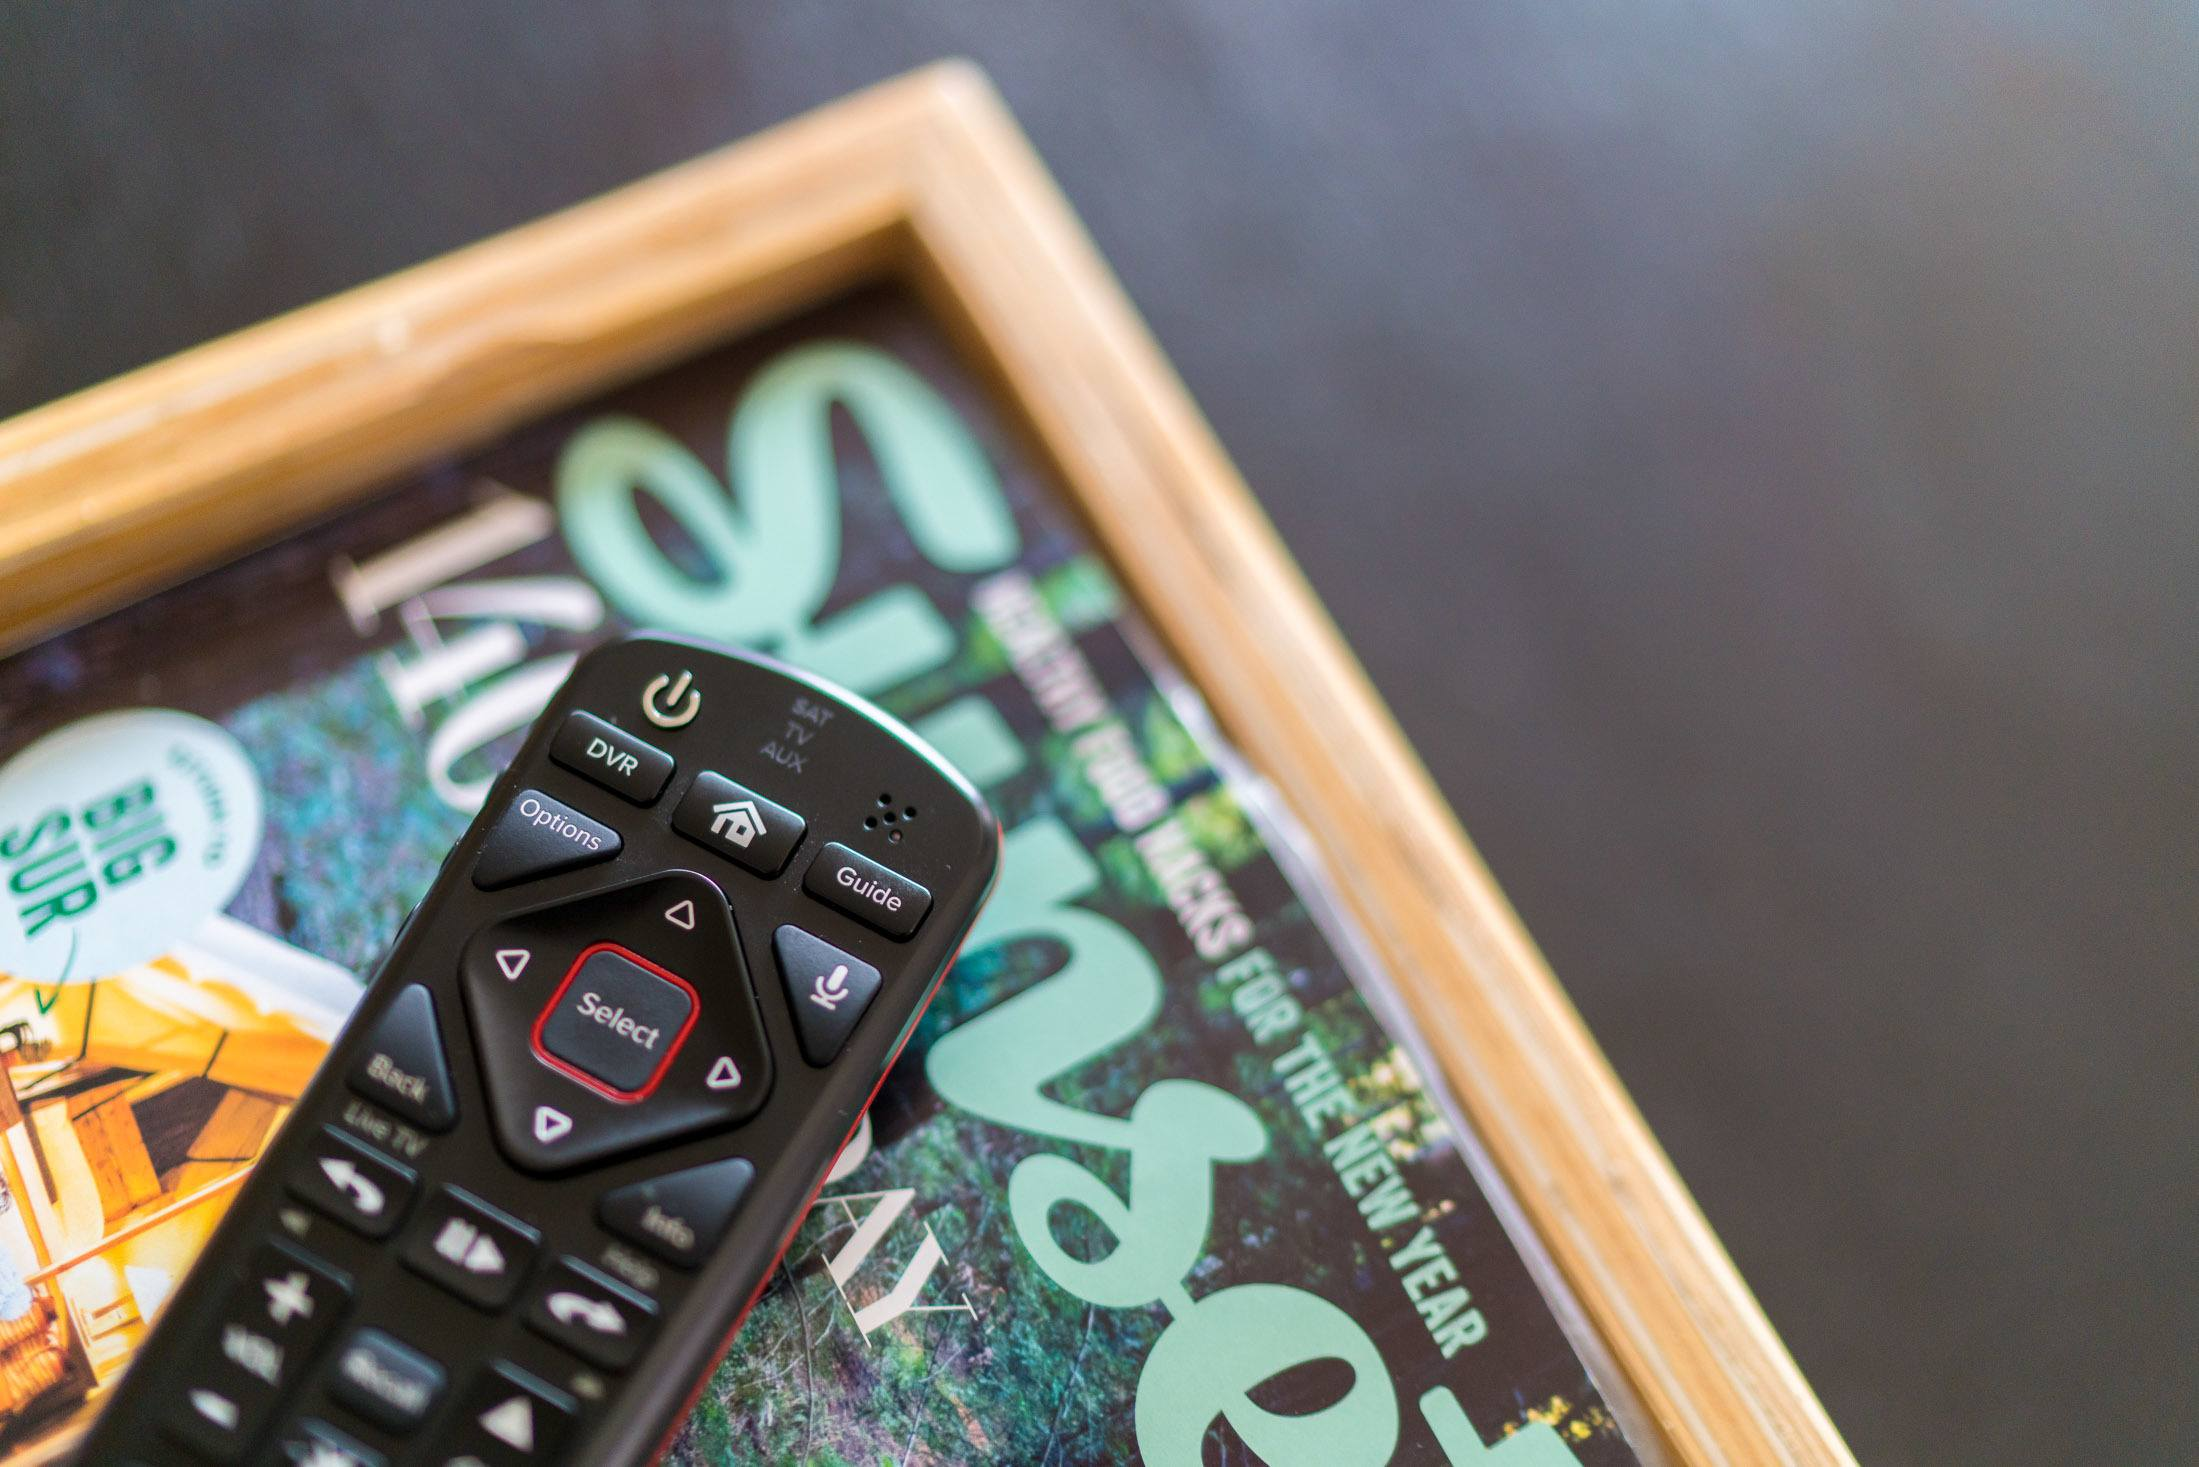 The DISH Voice Remote allows users to control the TV with their voices.